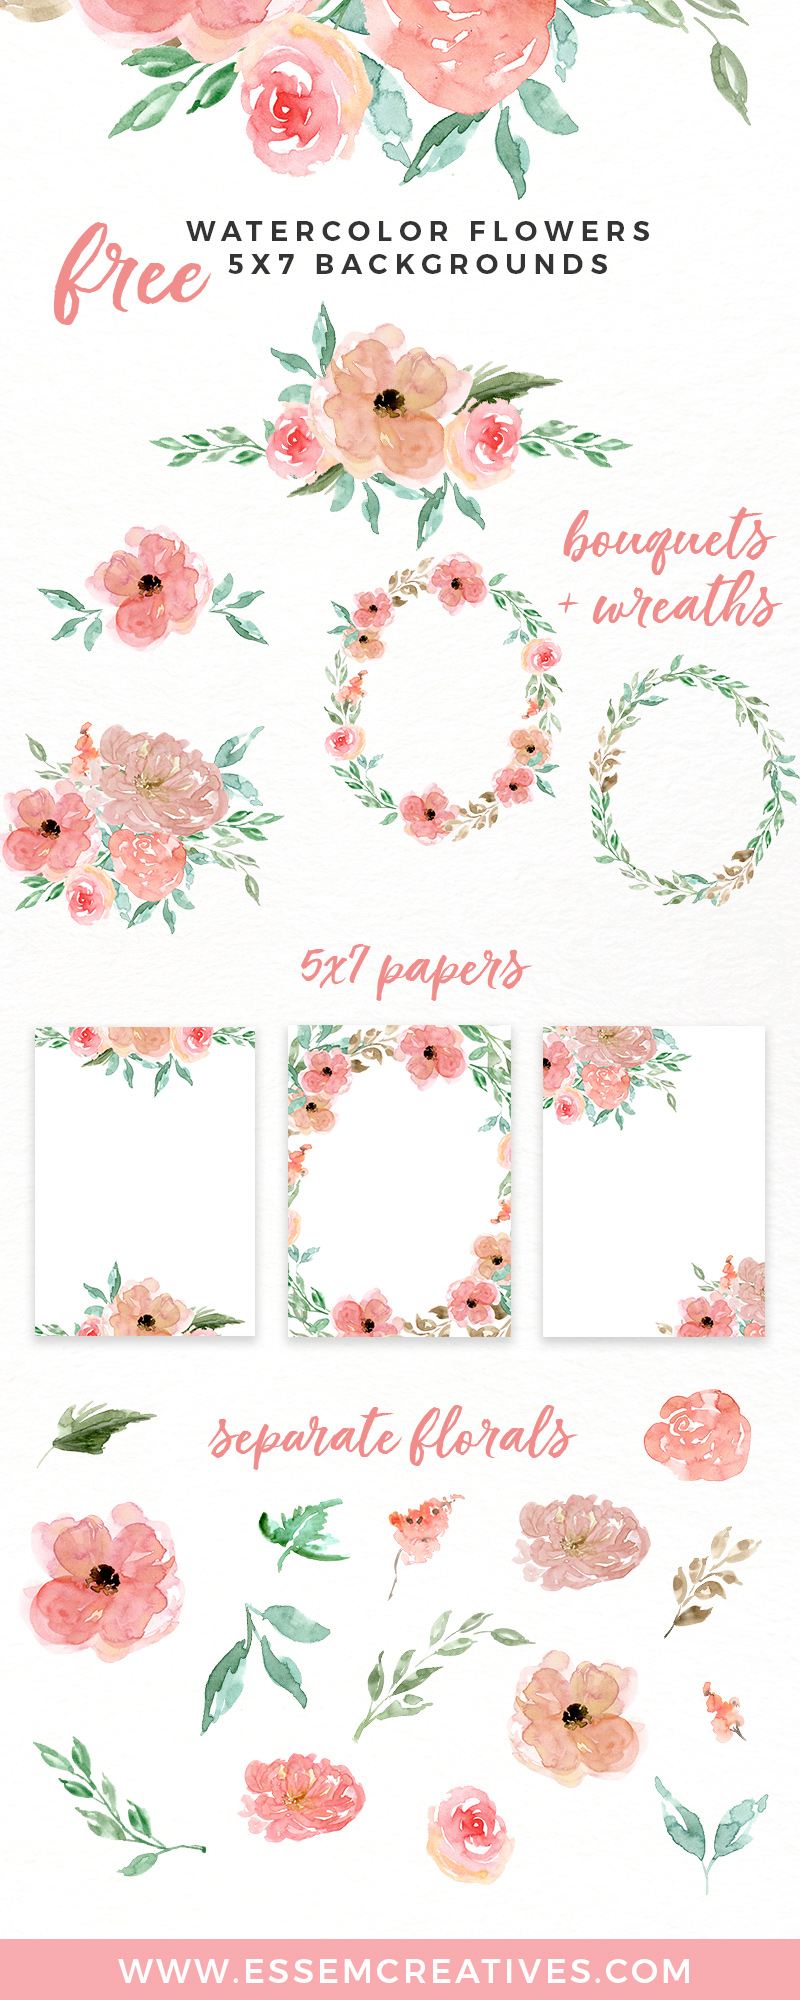 Free Watercolor Flowers Clipart, Floral Wreaths, 5x7 Borders.